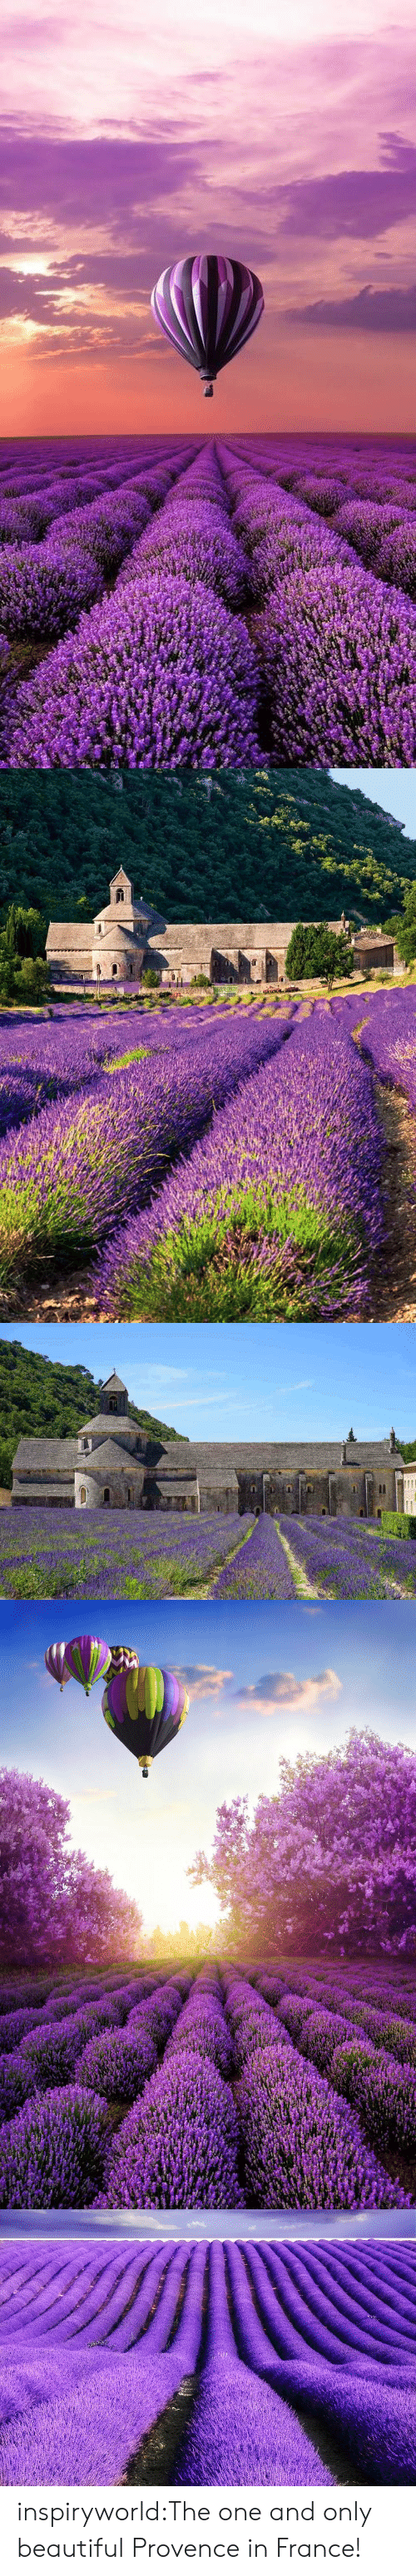 the one and only: inspiryworld:The one and only beautiful Provence in France!